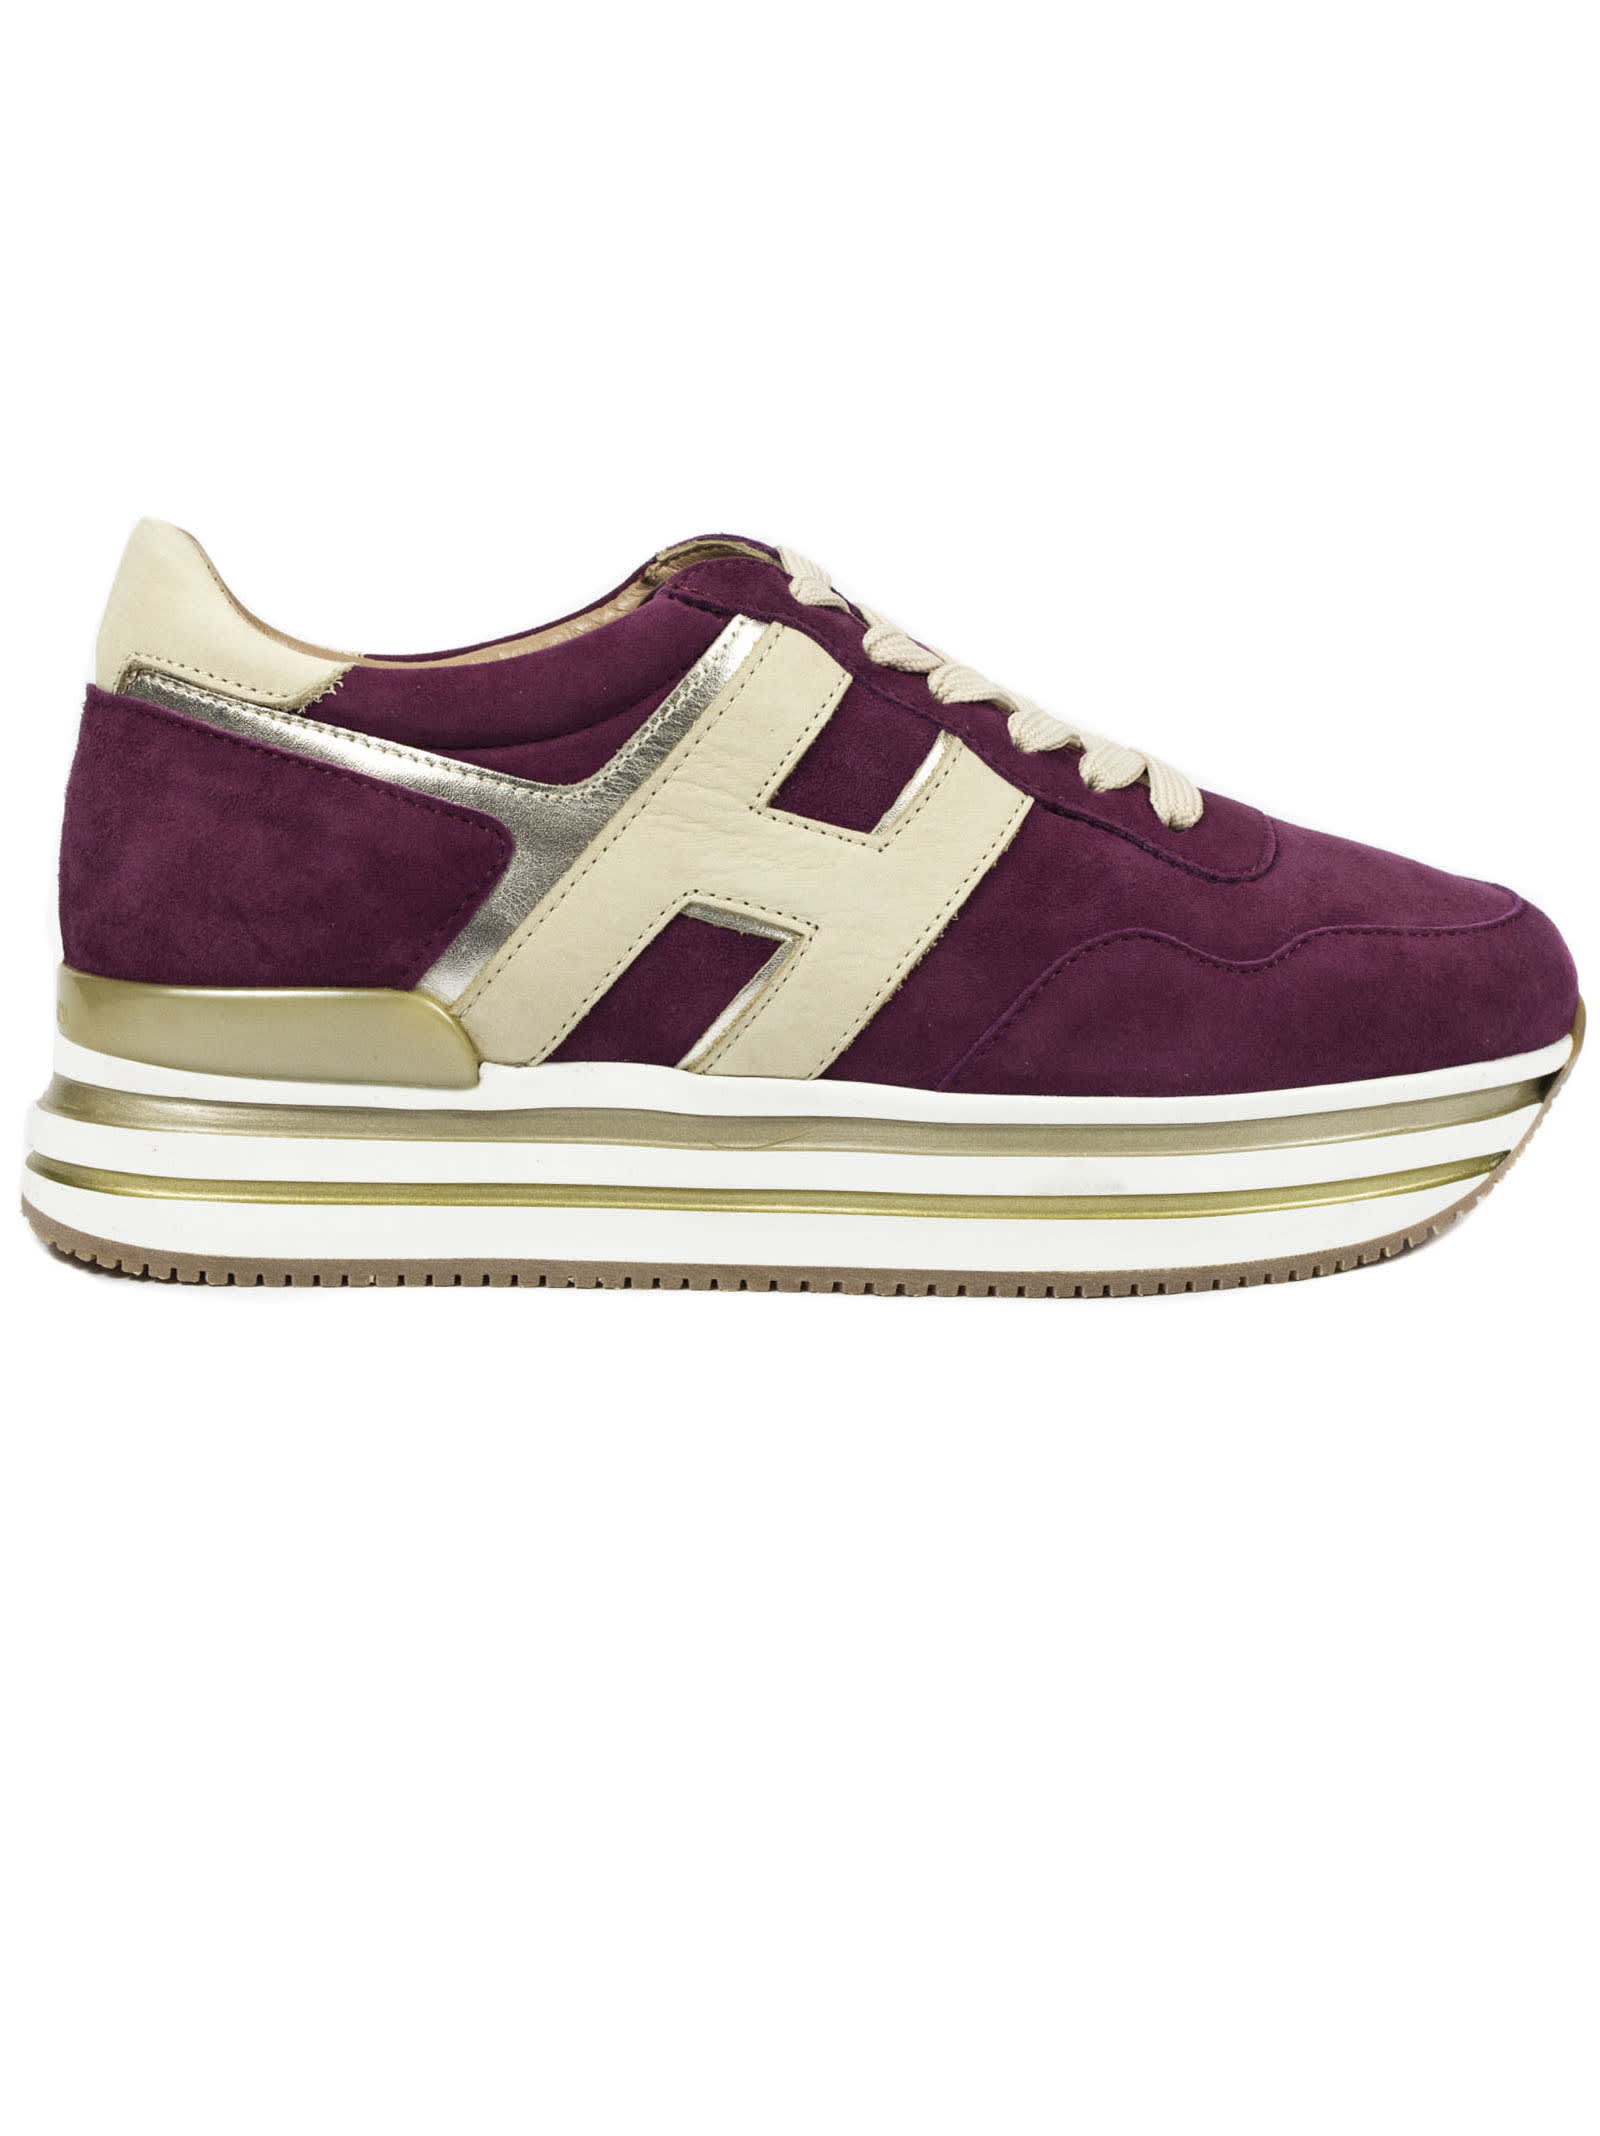 Hogan Purple Midi Platform Sneakers